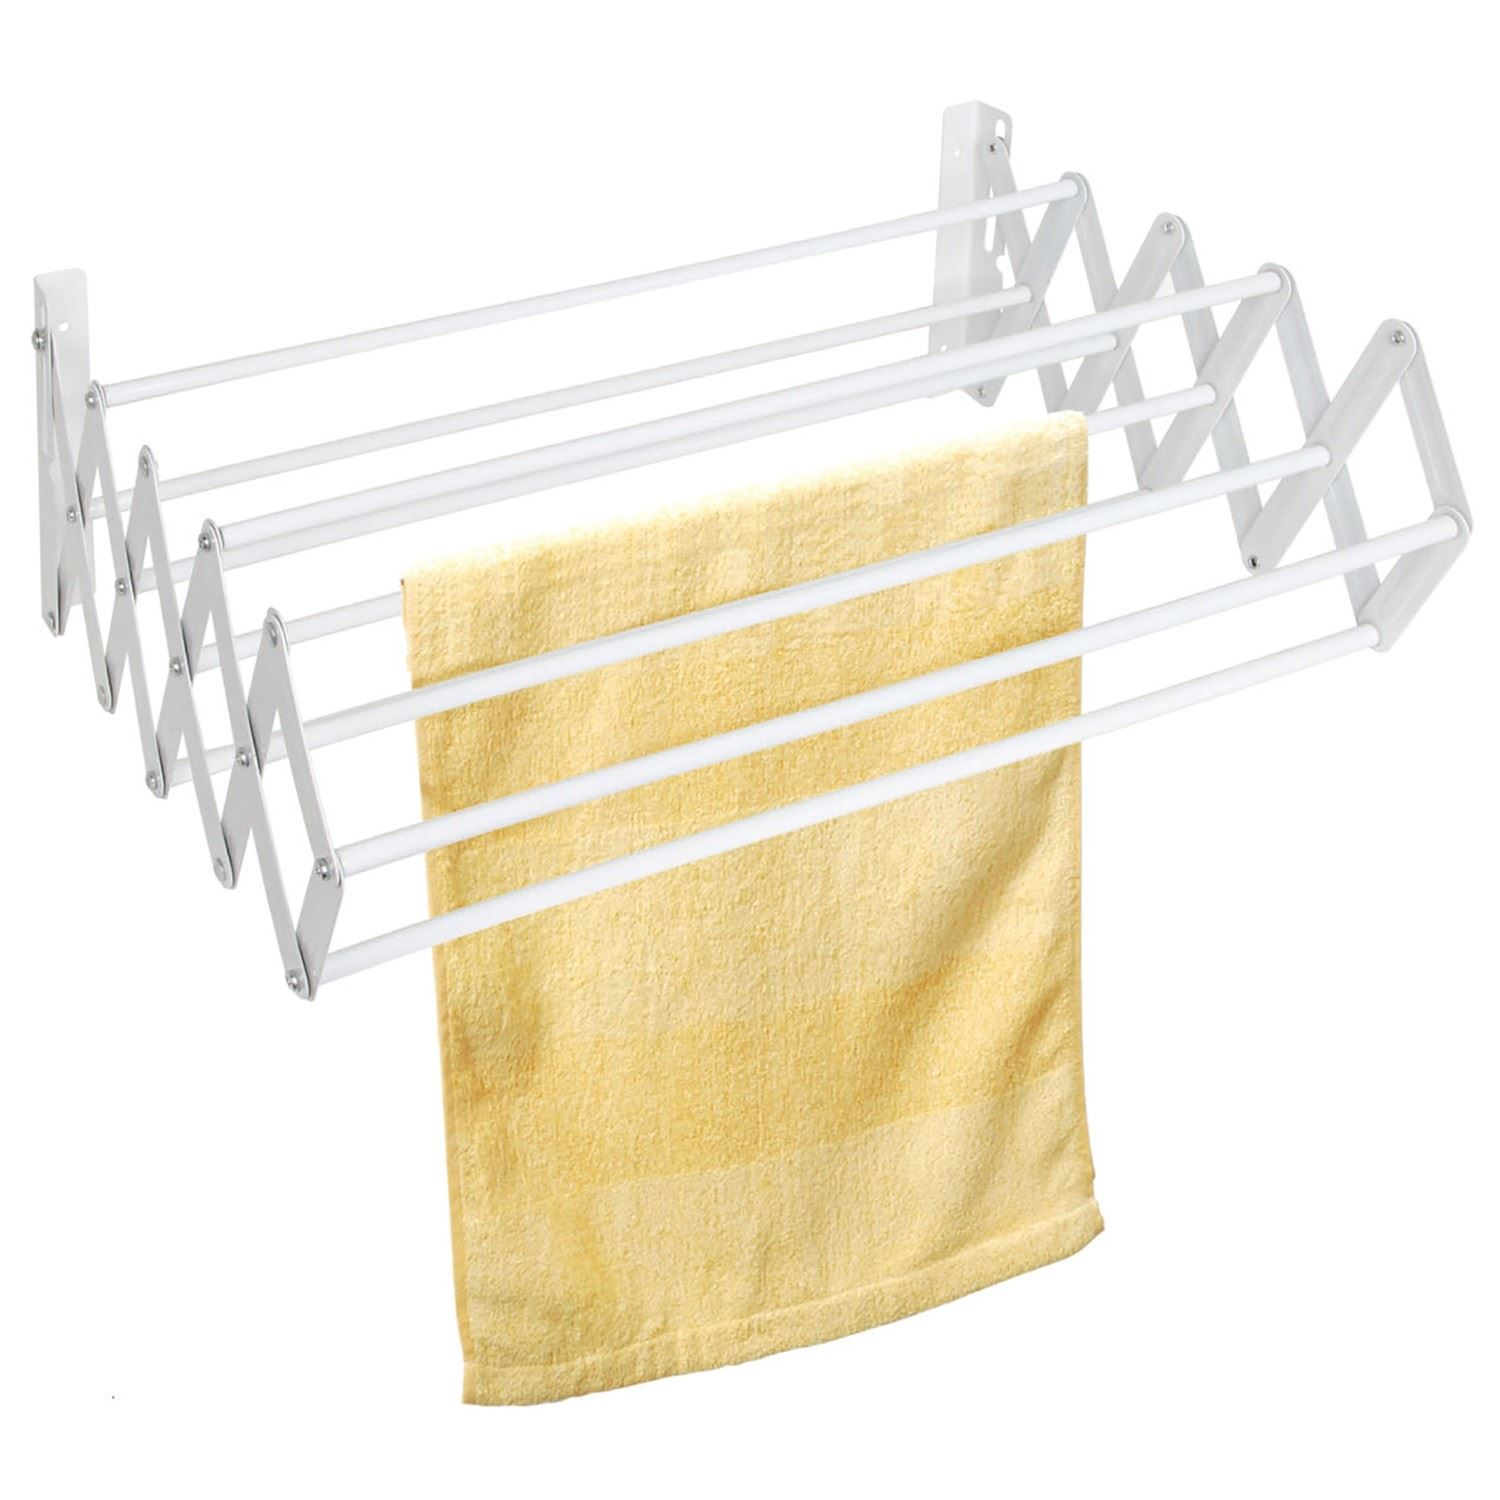 Indoor Clothes Airer Dryer Wall Mounted Expandable Laundry Hanging